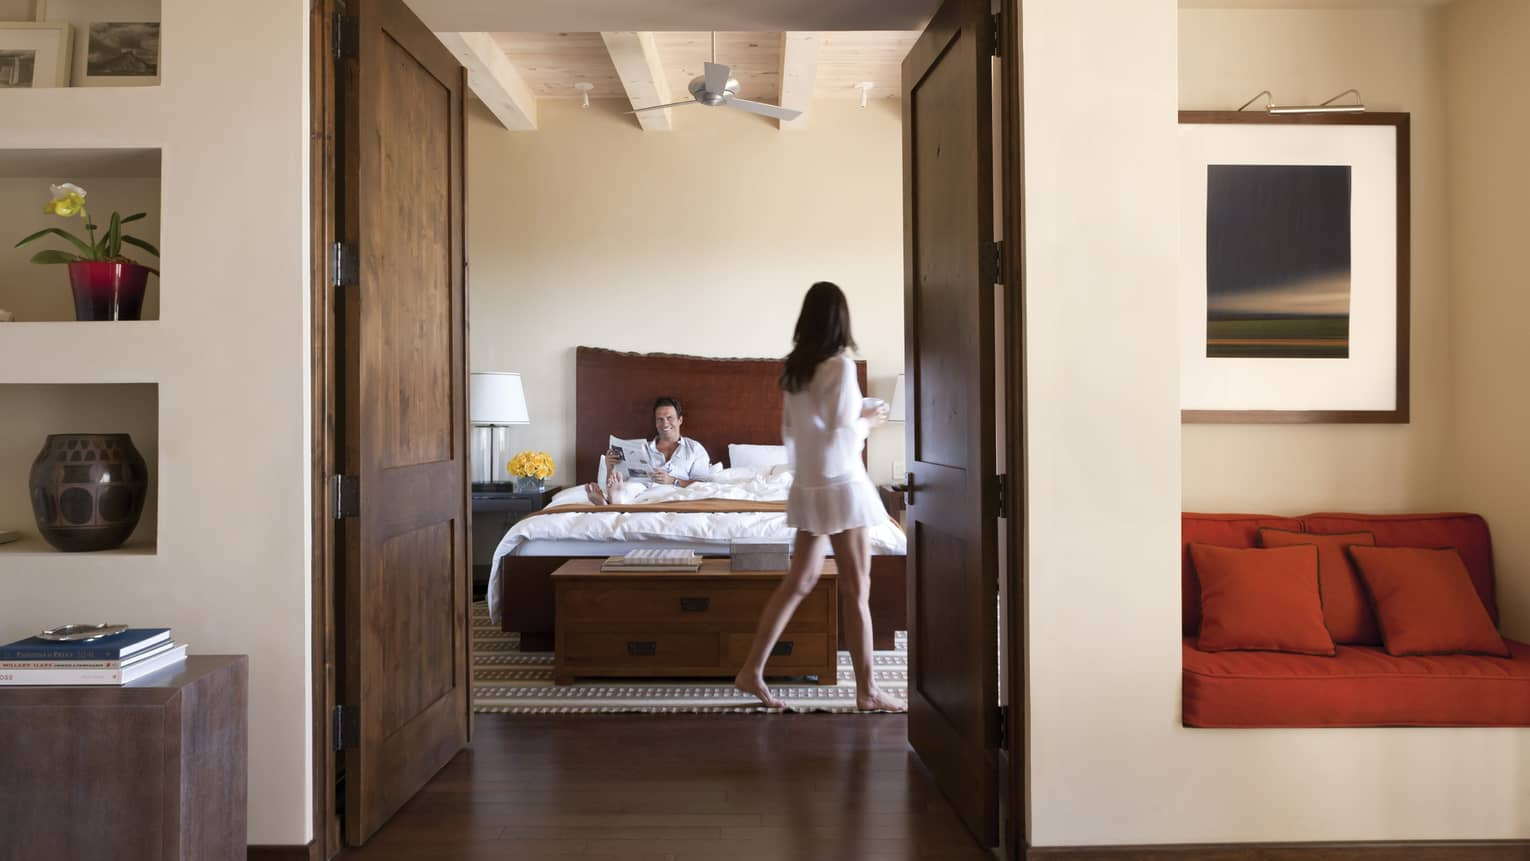 Hotel suite modern wood doors open to man reading in bed, woman walking with coffee cup